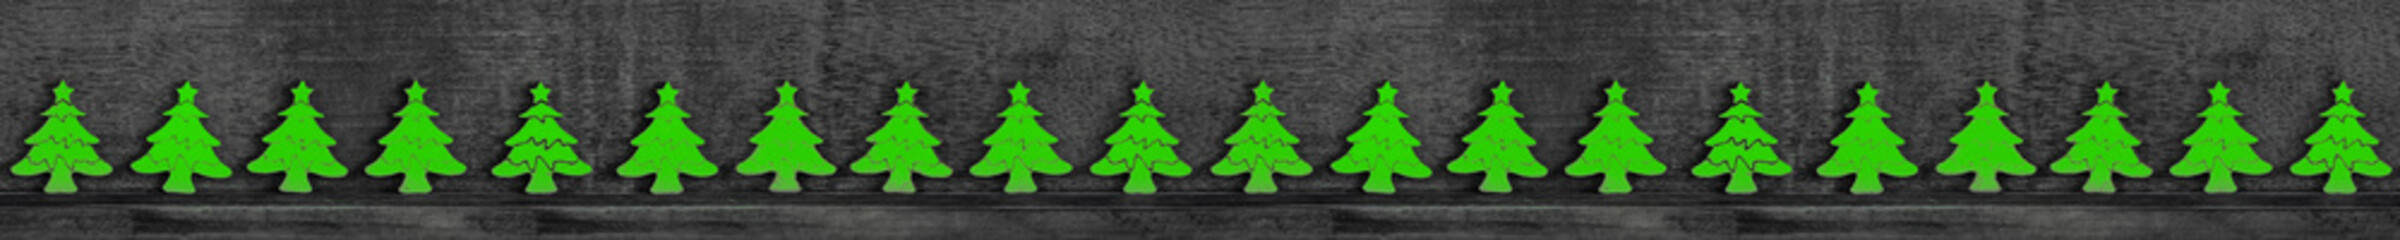 Christmas decoration wooden background with row of small wooden fir trees seamless banner